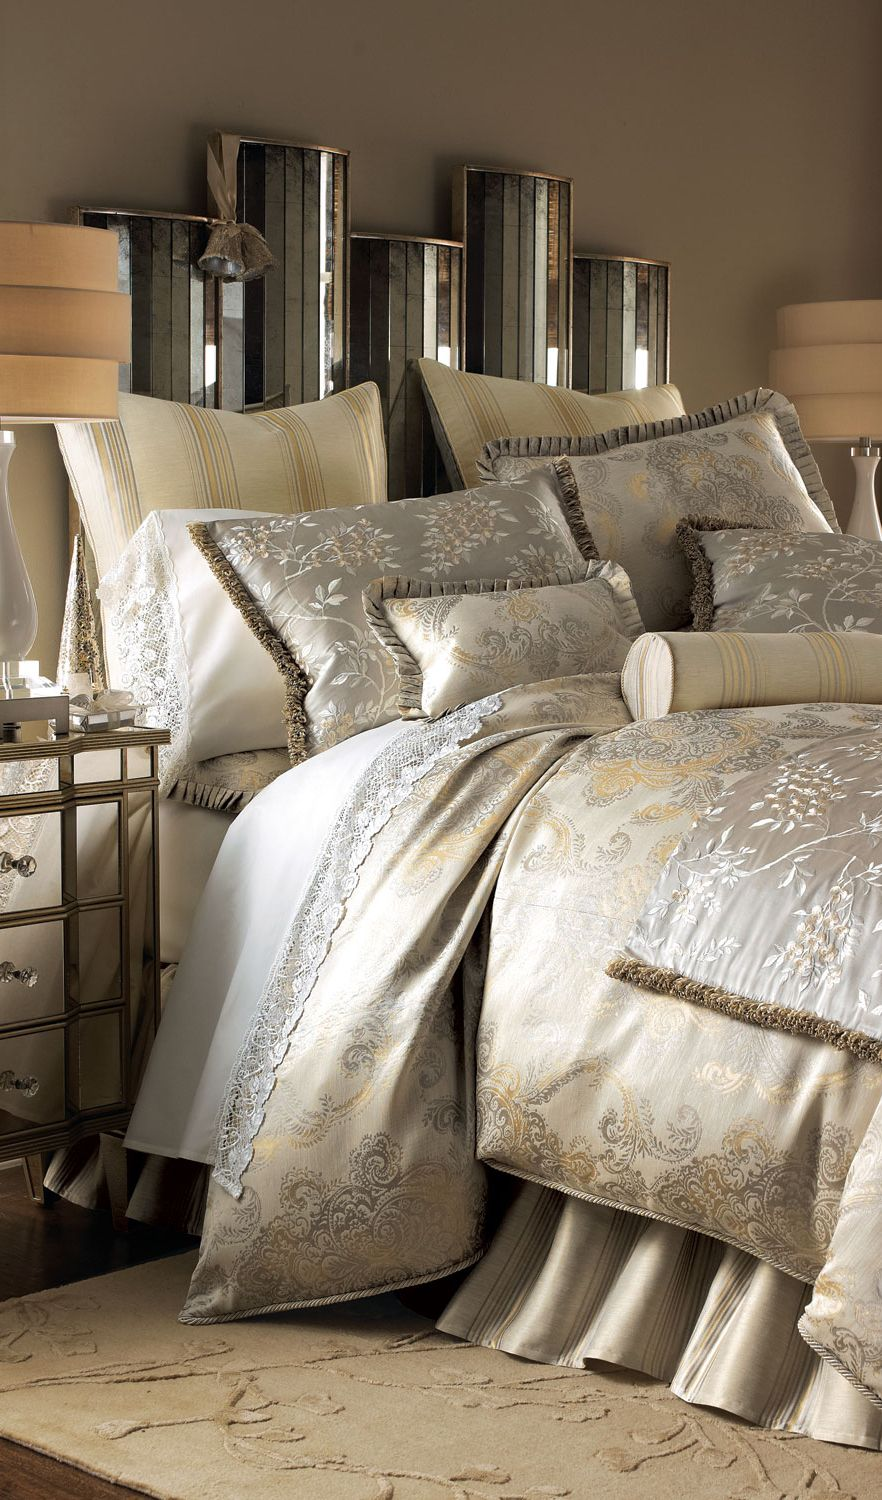 Bed And Bath Home Bedding Comforters Duvet Covers Bedding Sets Luxury Bedding Sets Bed Design Luxury Bedding